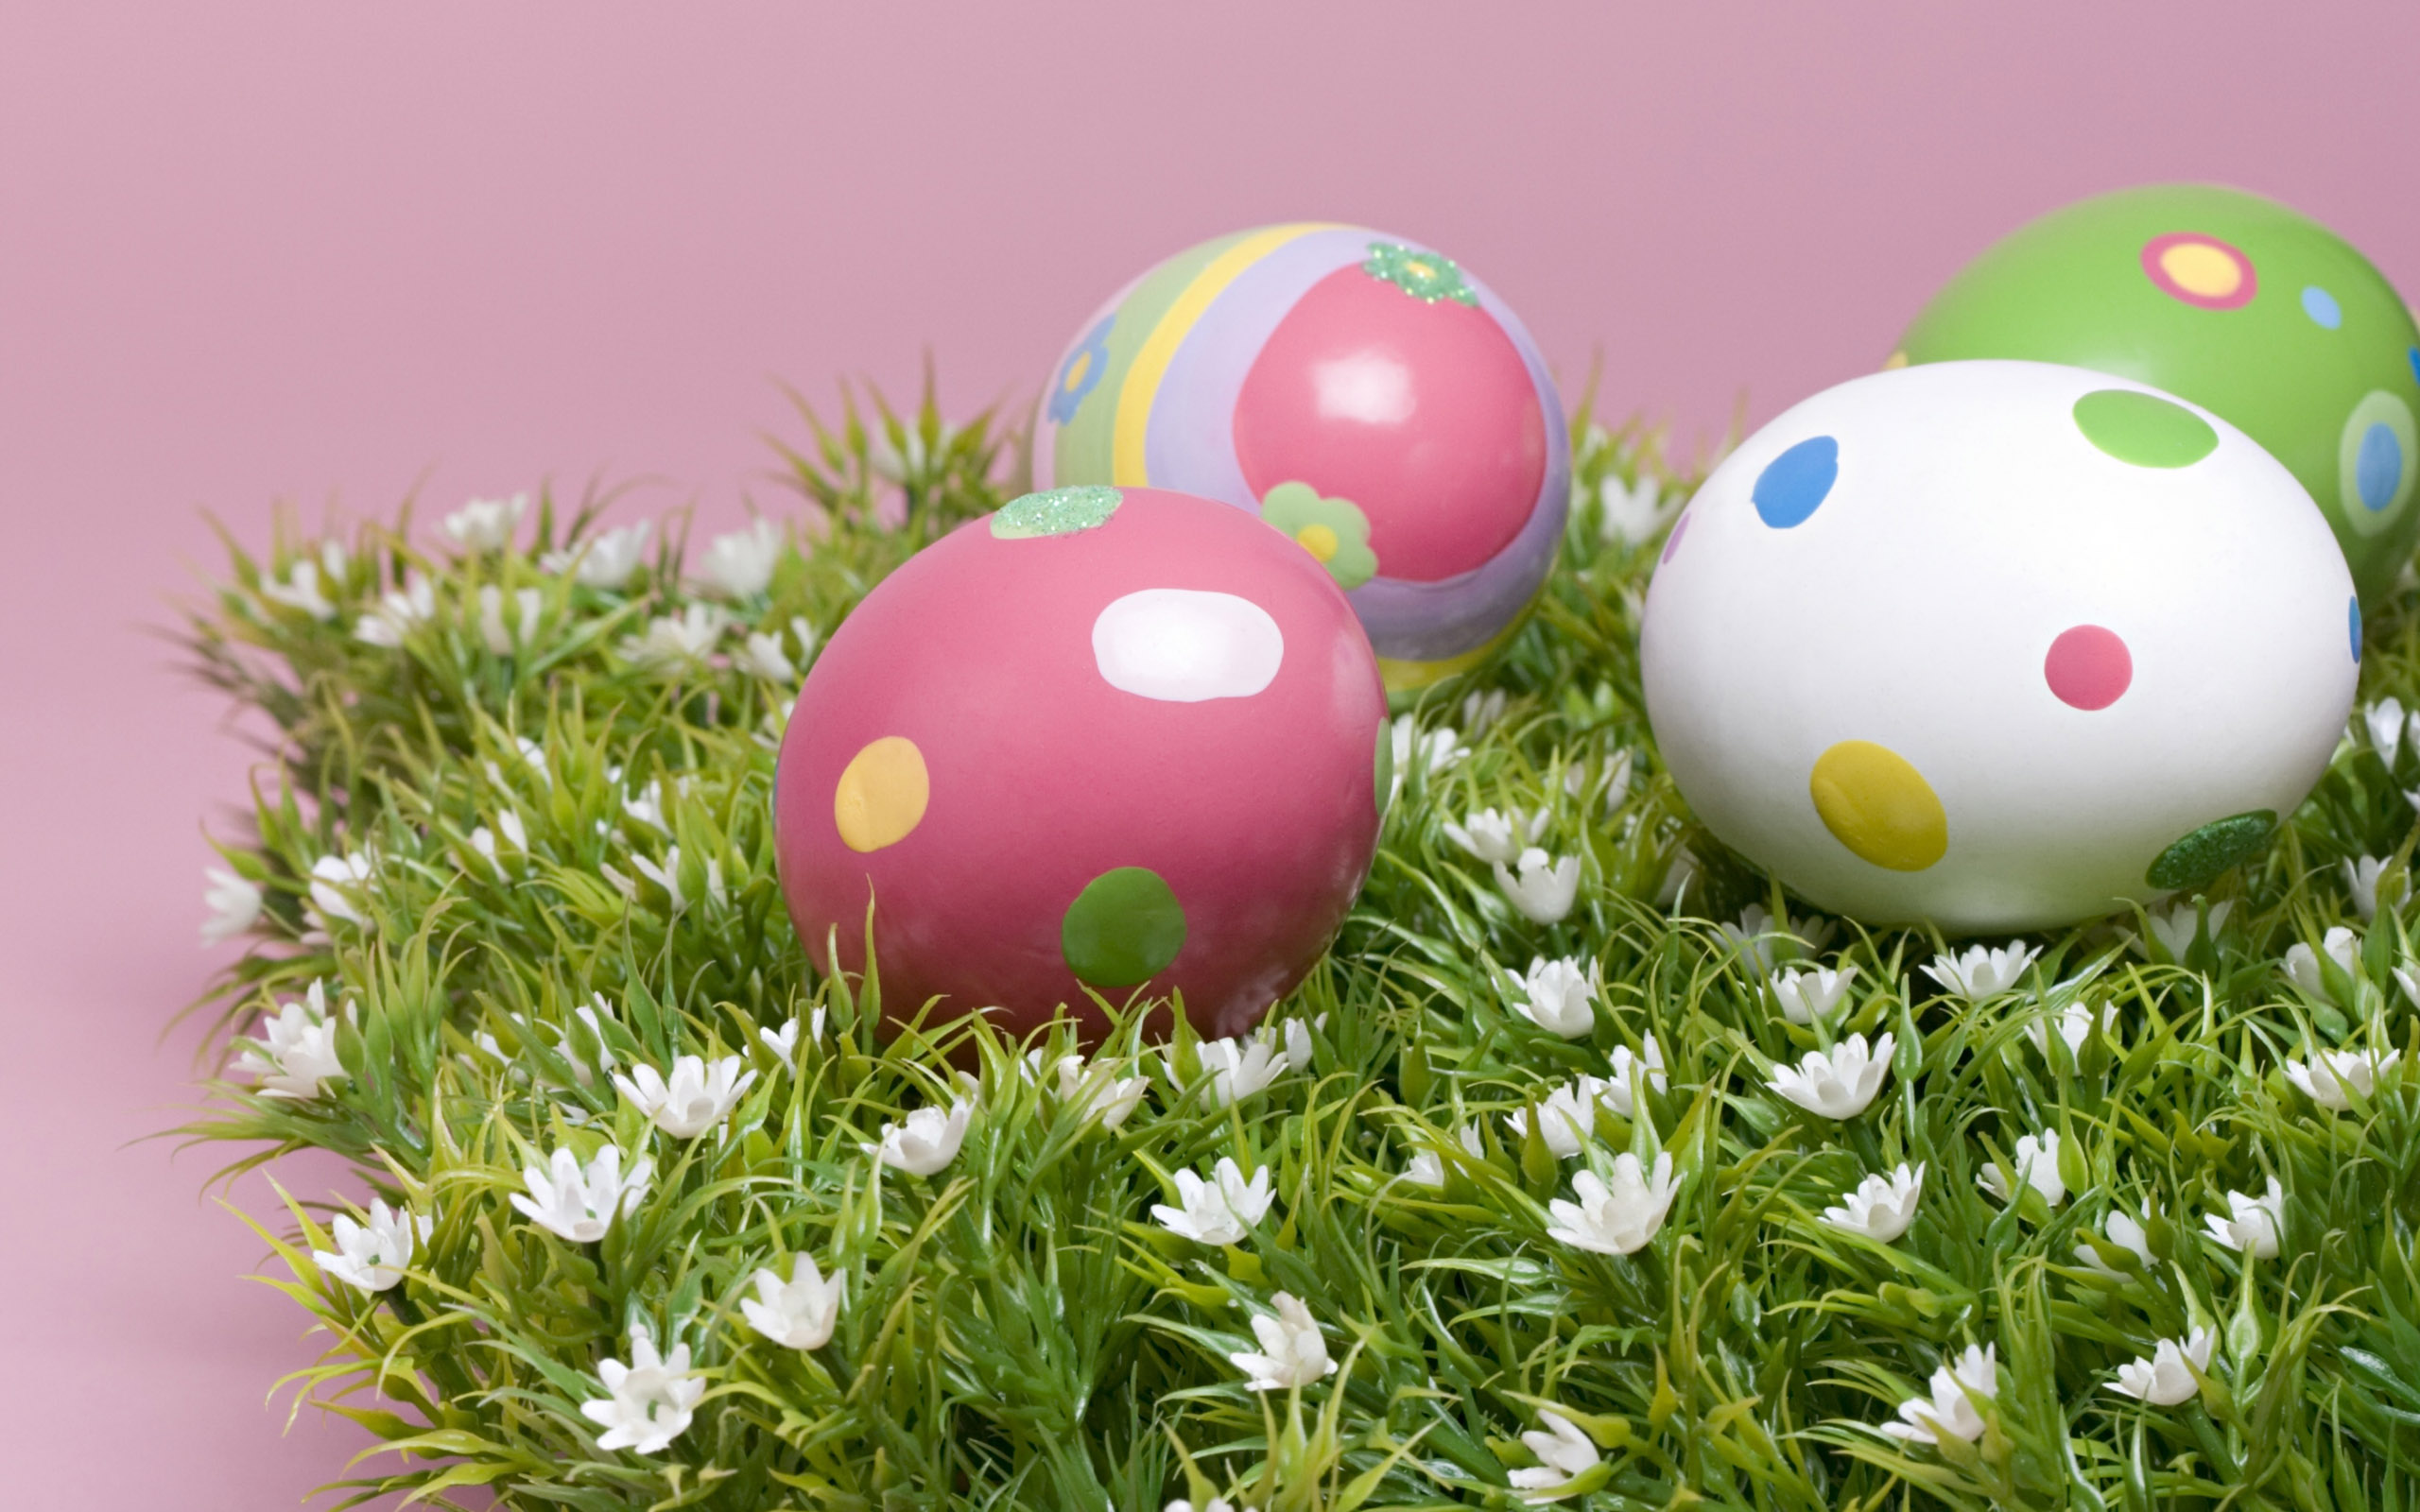 free cute easter eggs picture hd wallpaper wallpapers hd wallpapers